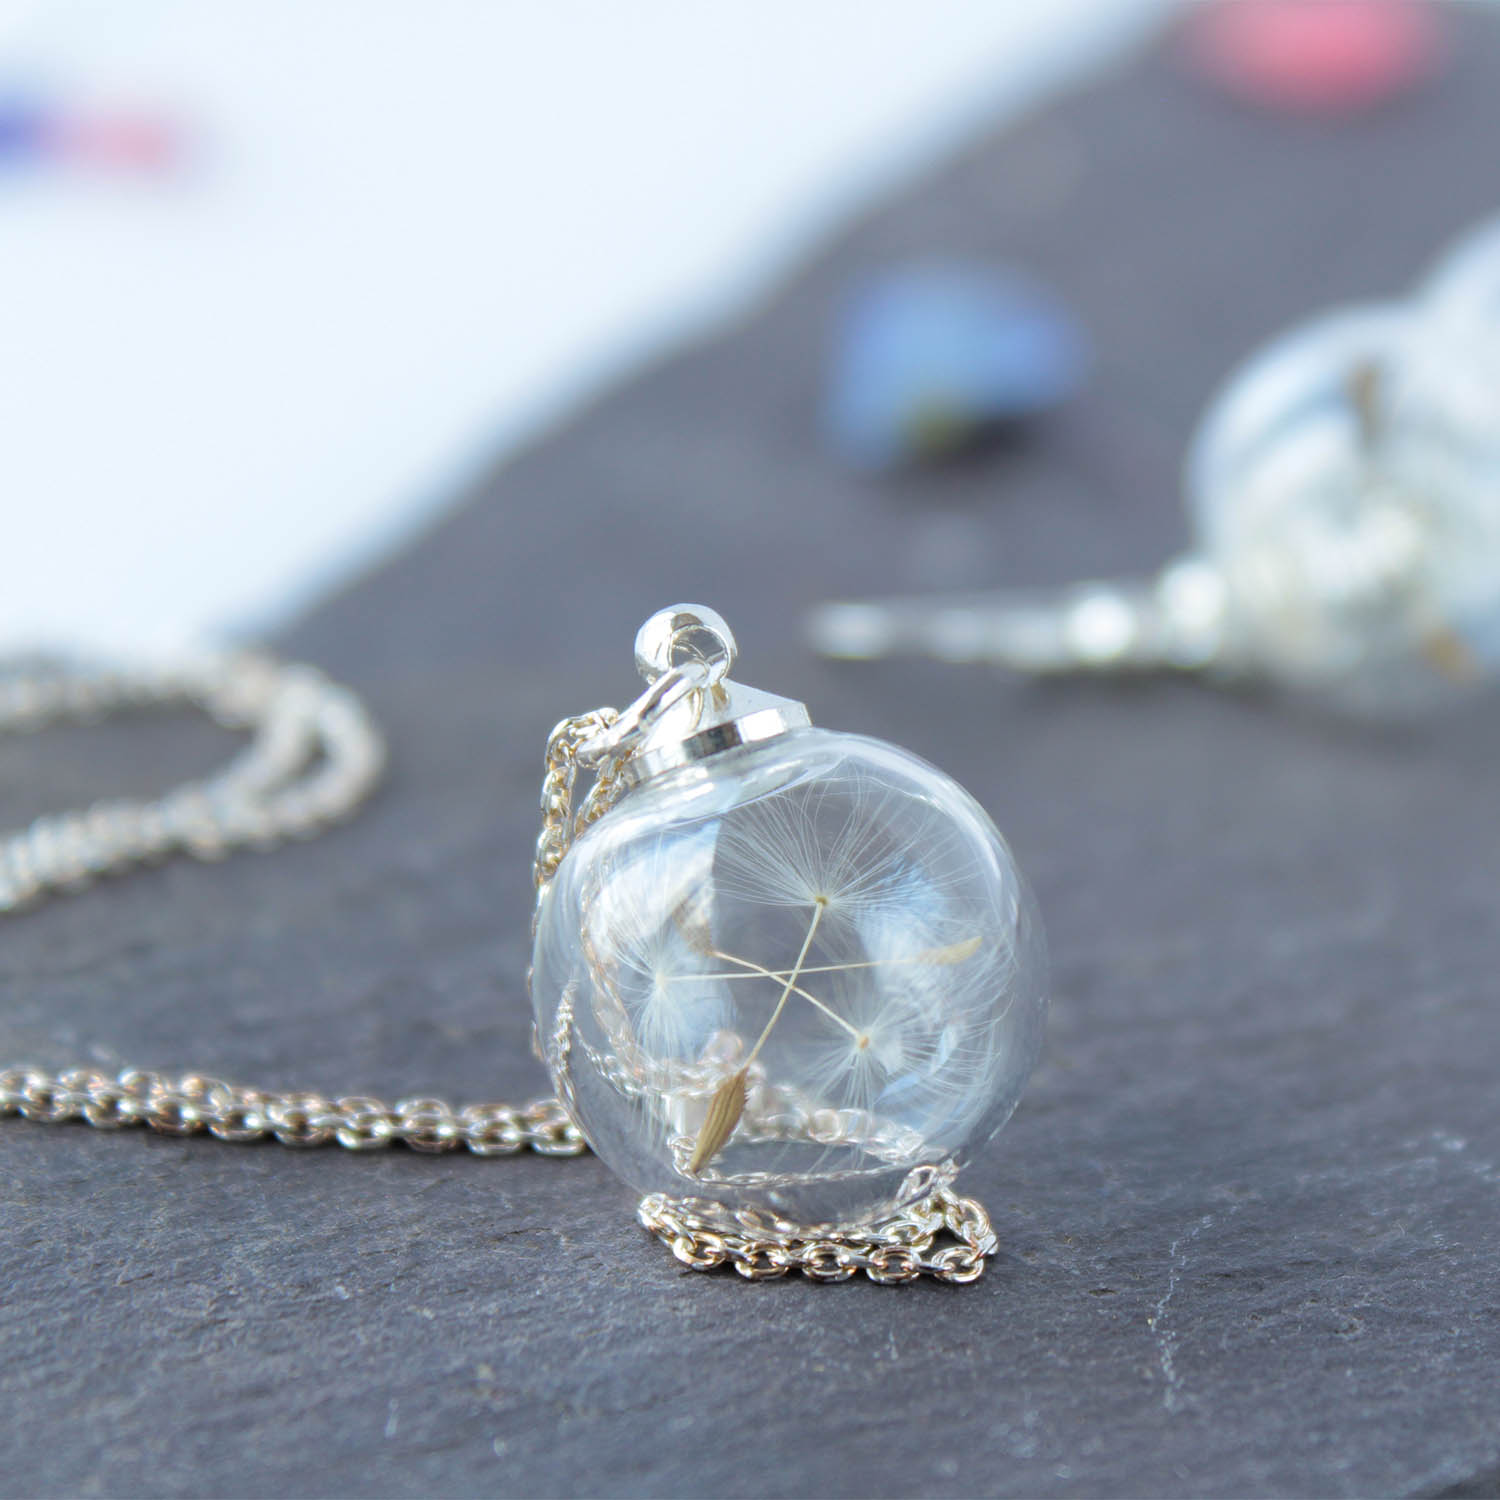 Dandelion Collection - Handpicked Dandelion Seeds